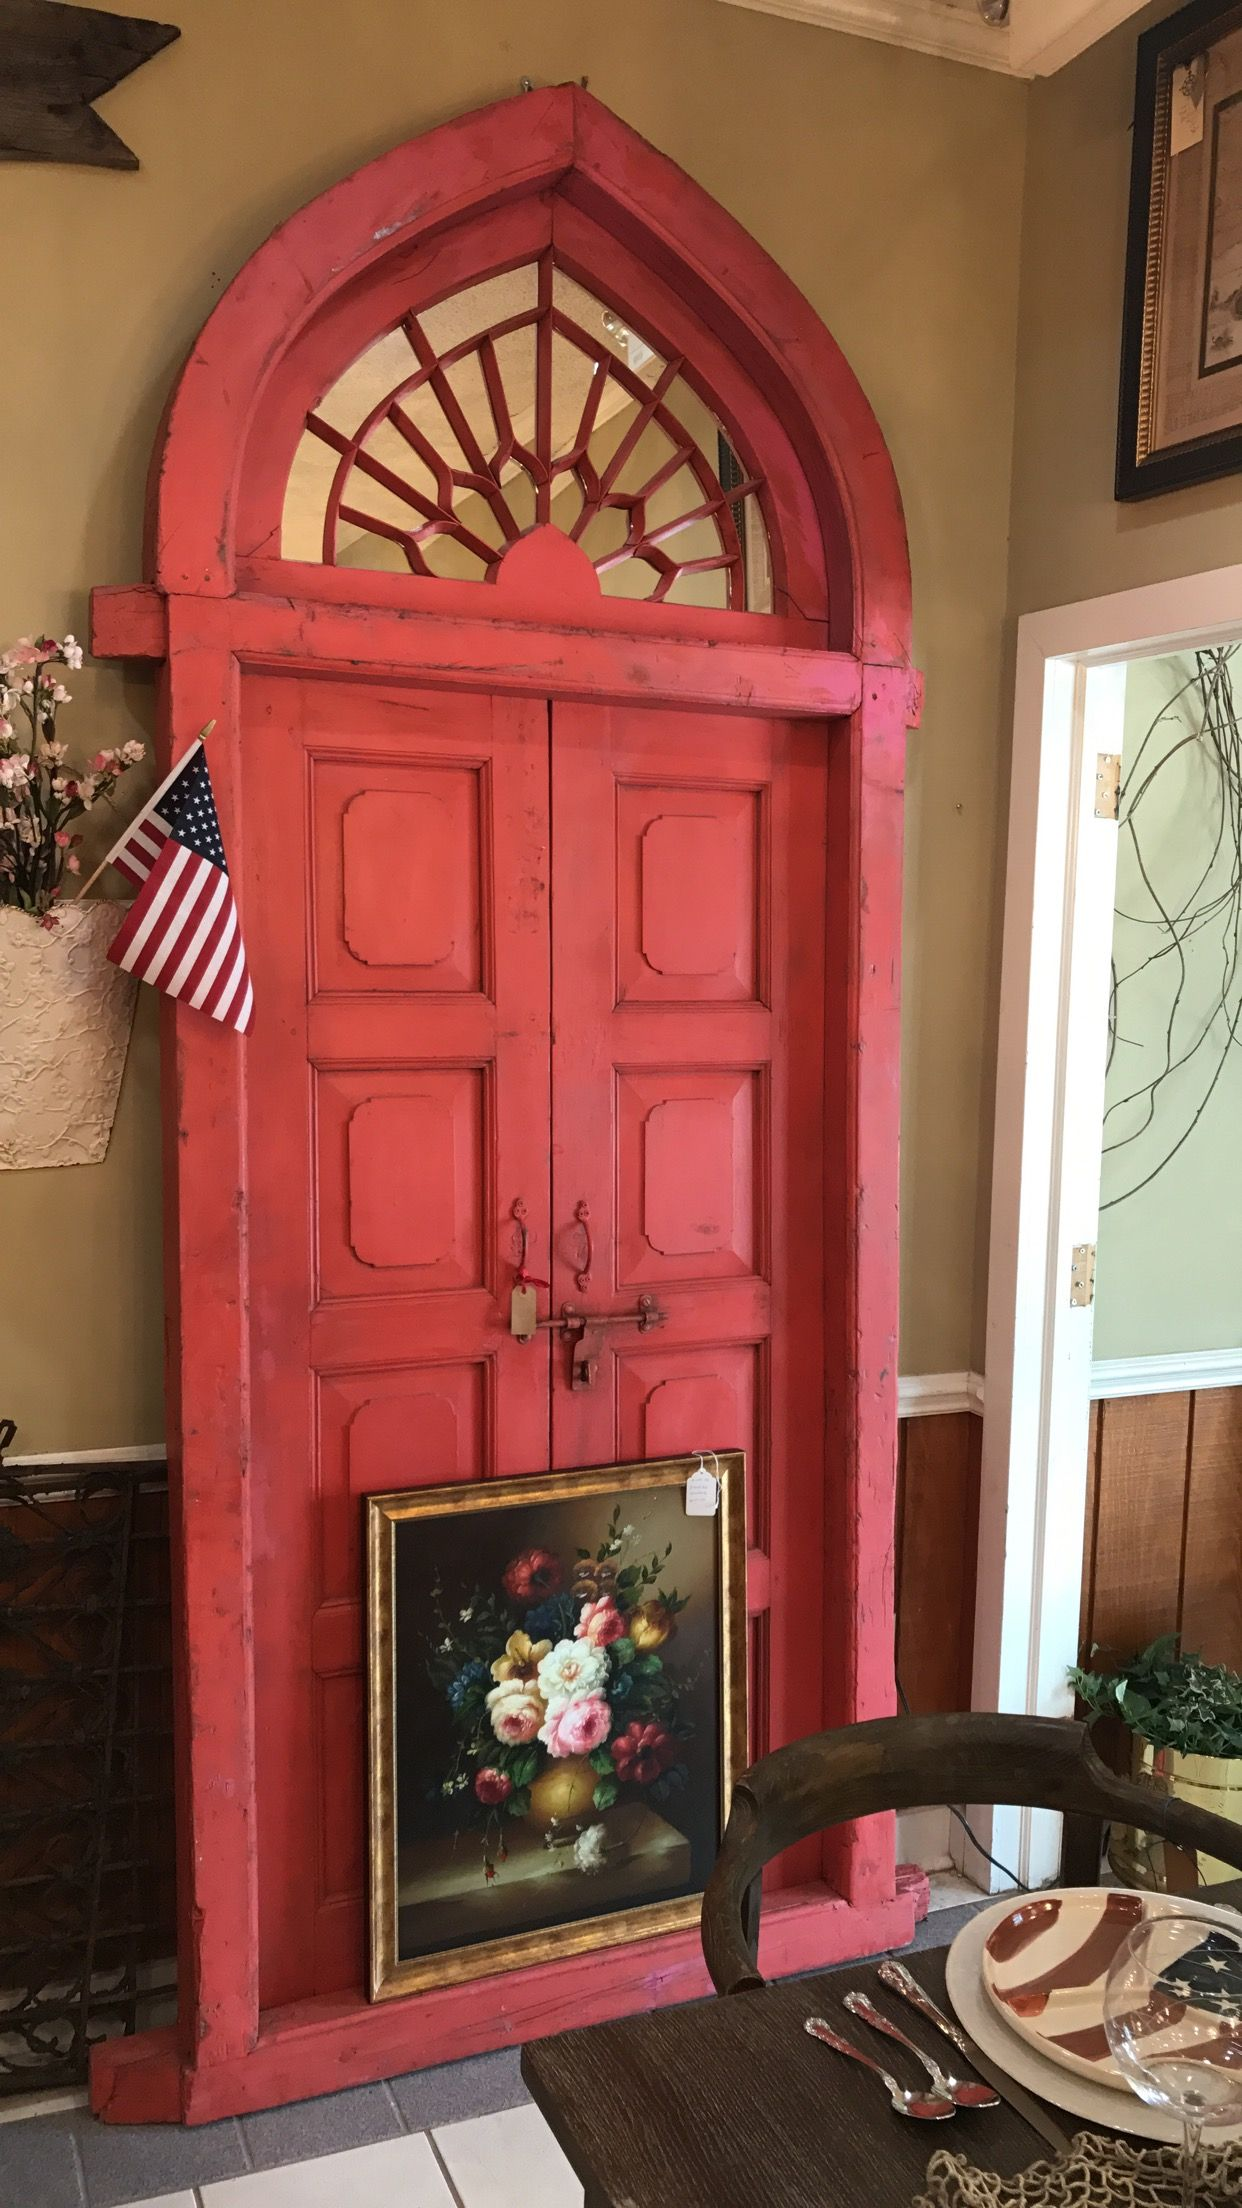 This Door 3 Calabash Trading Consignment Shop In Calabash Nc